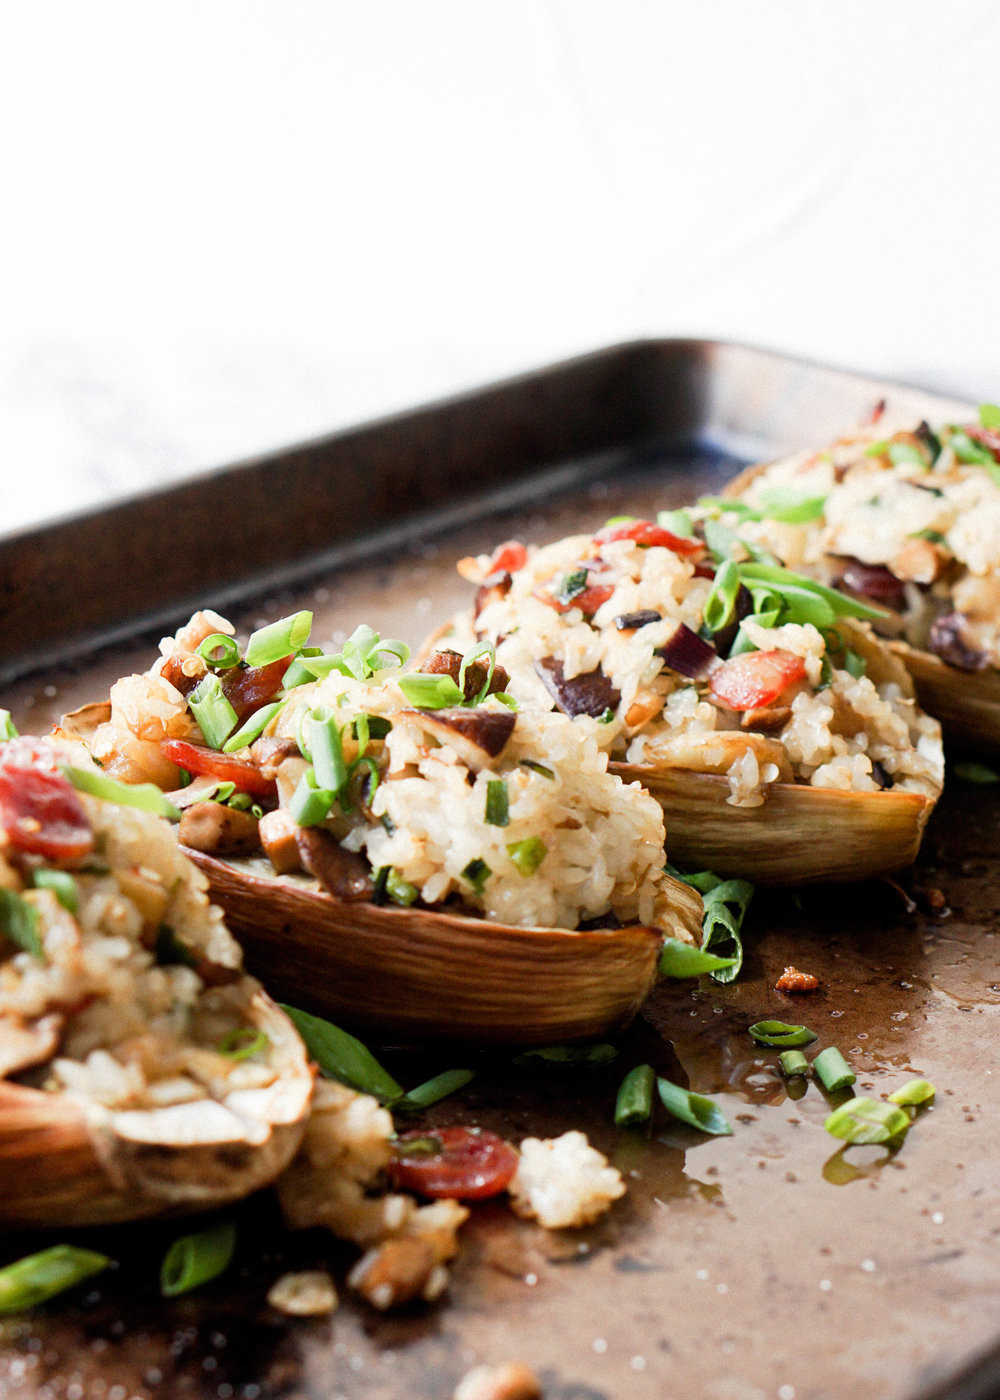 Sticky Rice Stuffed Eggplant